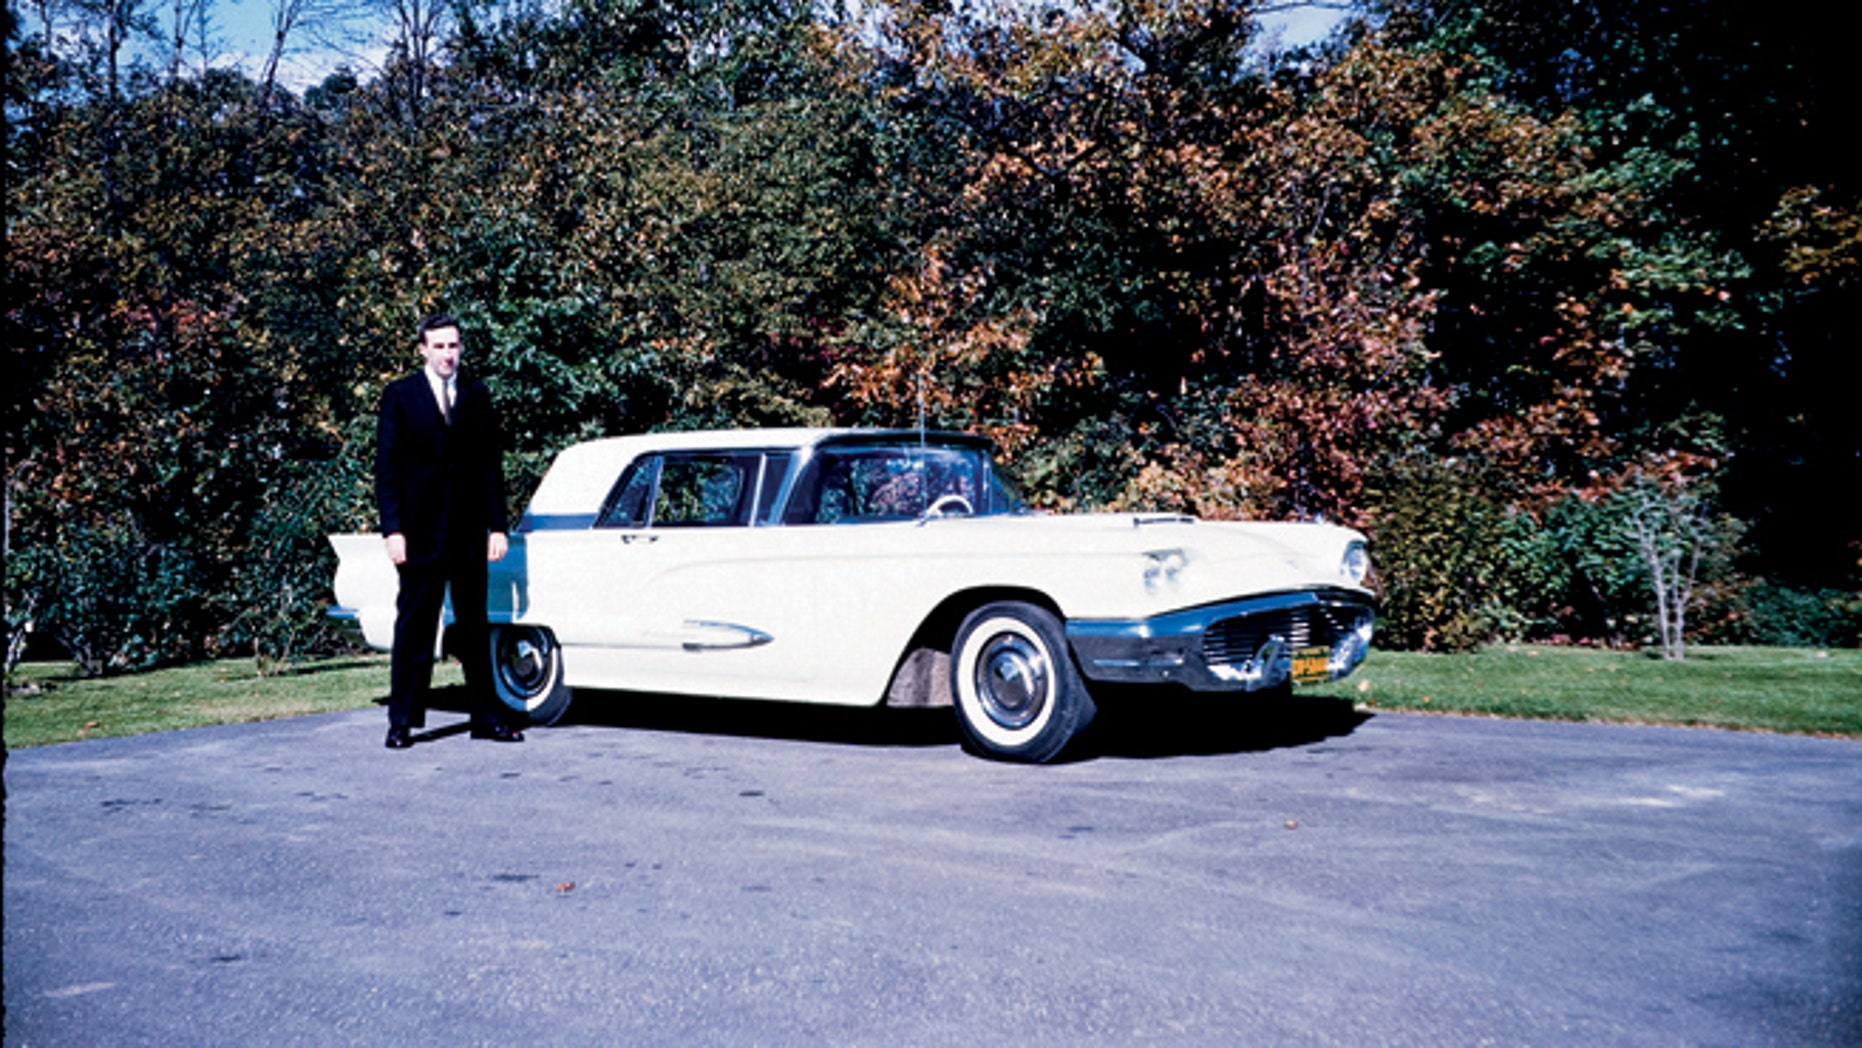 Dave Power with a 59' Thunderbird.